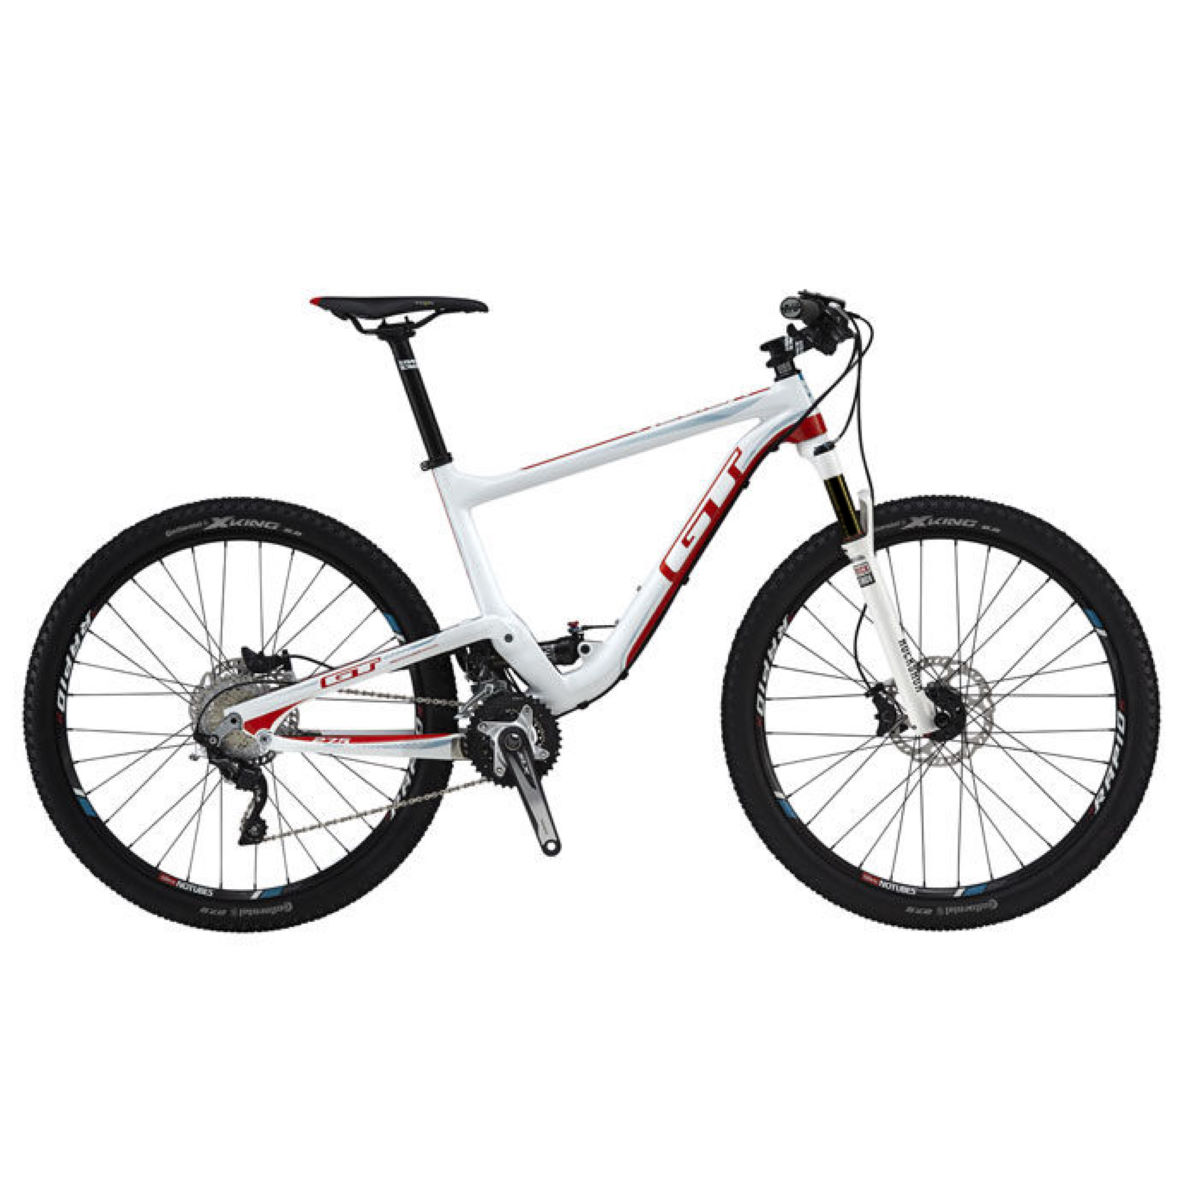 VTT GT Helion Expert (carbone, 2015) - L Stock Bike Gloss White/Orange VTT tout suspendu